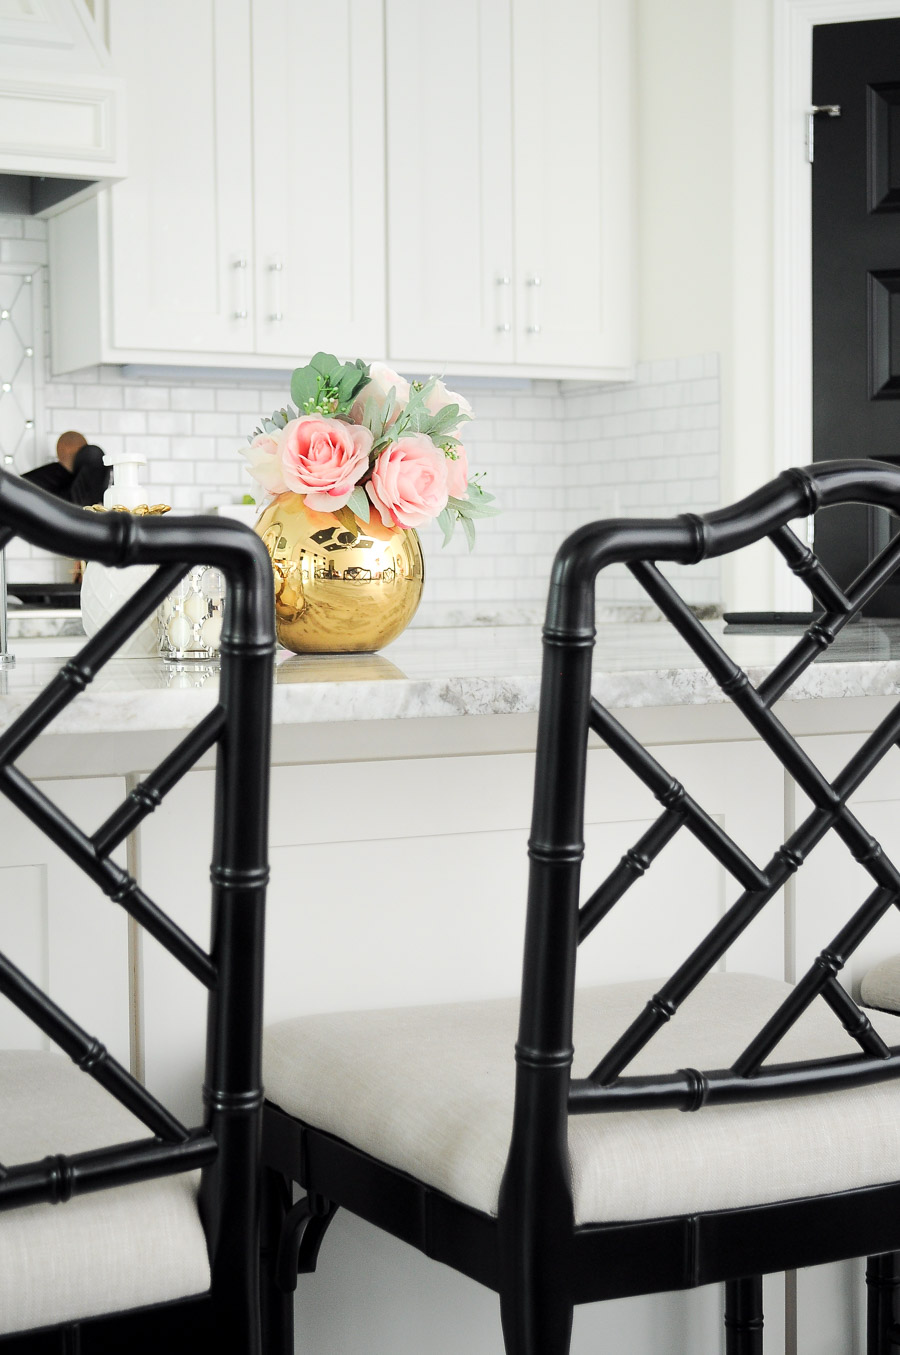 Black bamboo counter stools in an all white kitchen with a gold vase and florals.